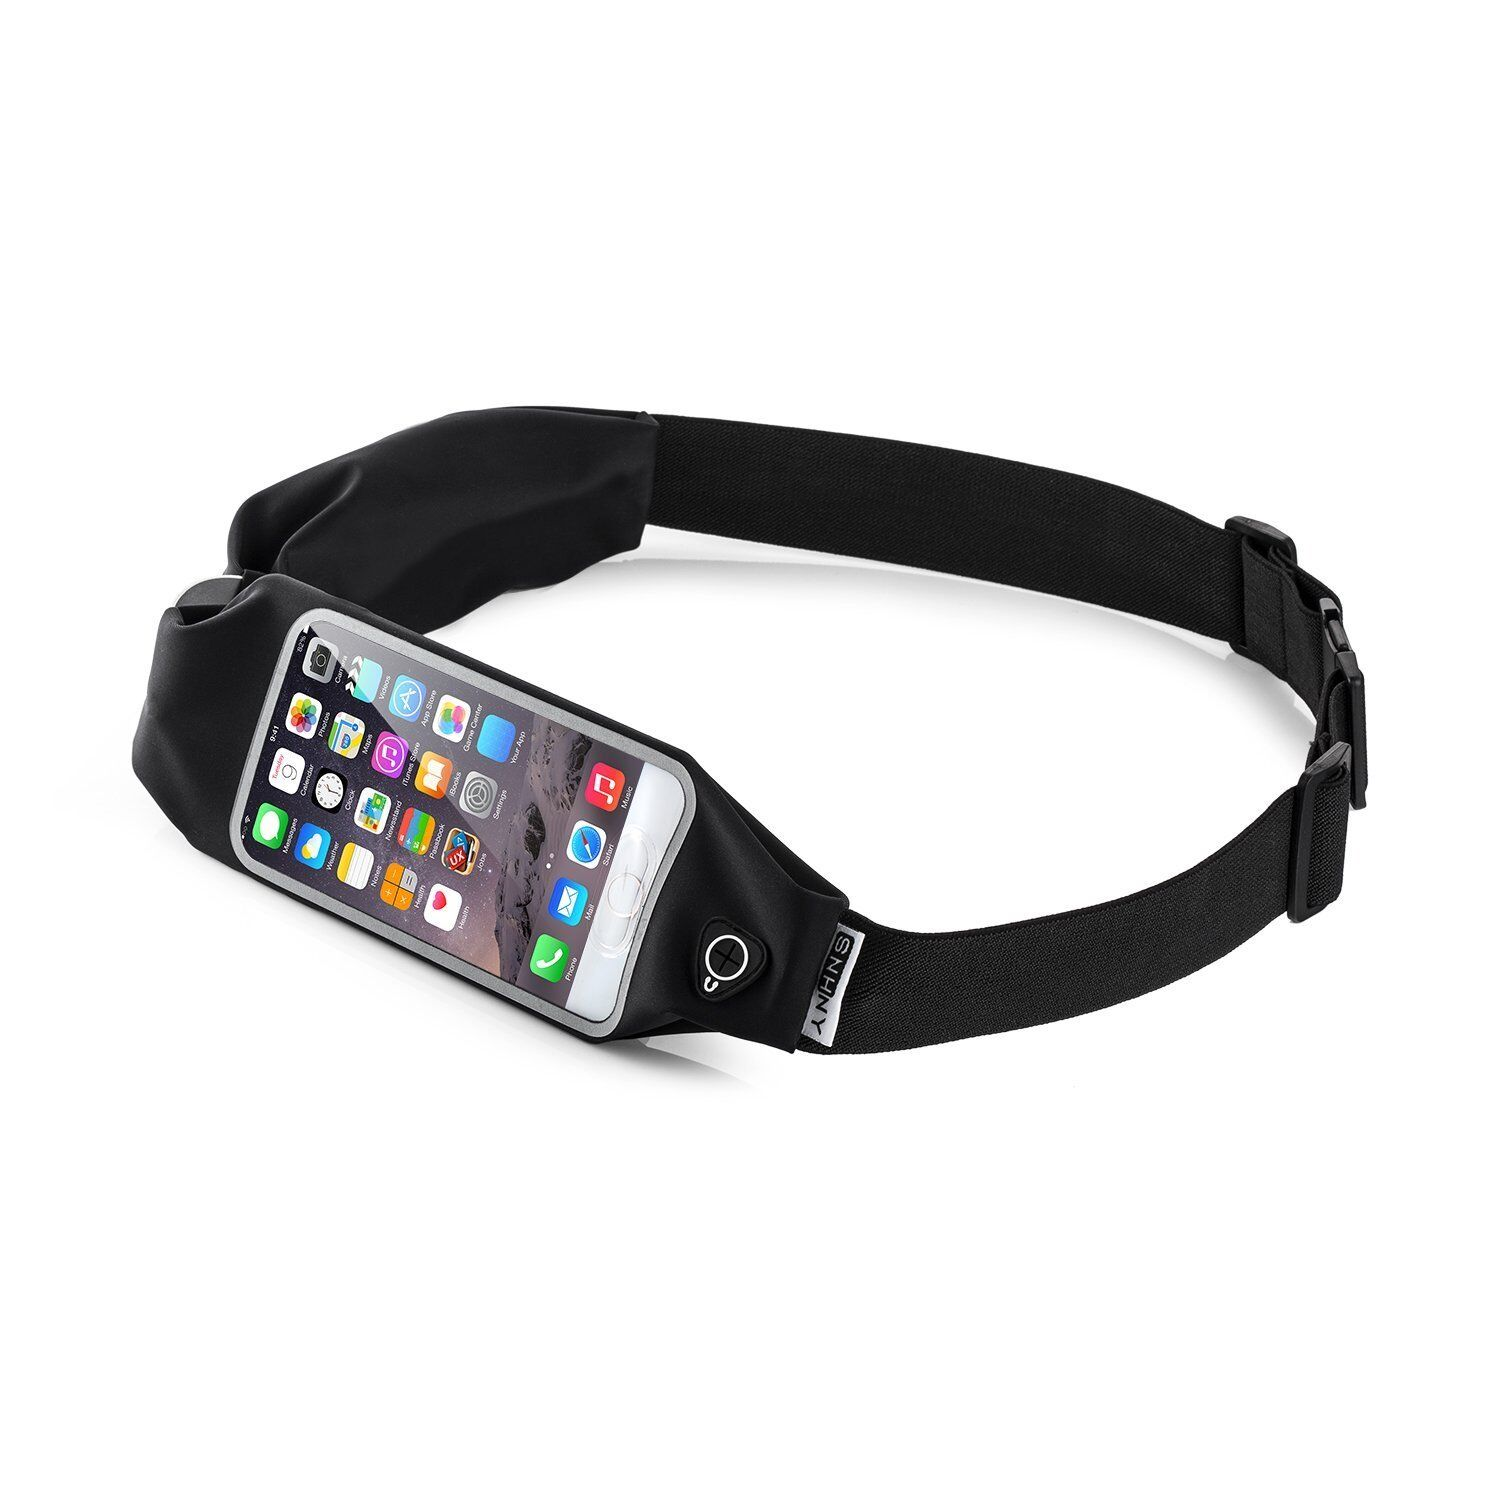 Top Fit Running Belt For Men and Women Dual Pockets W Touch